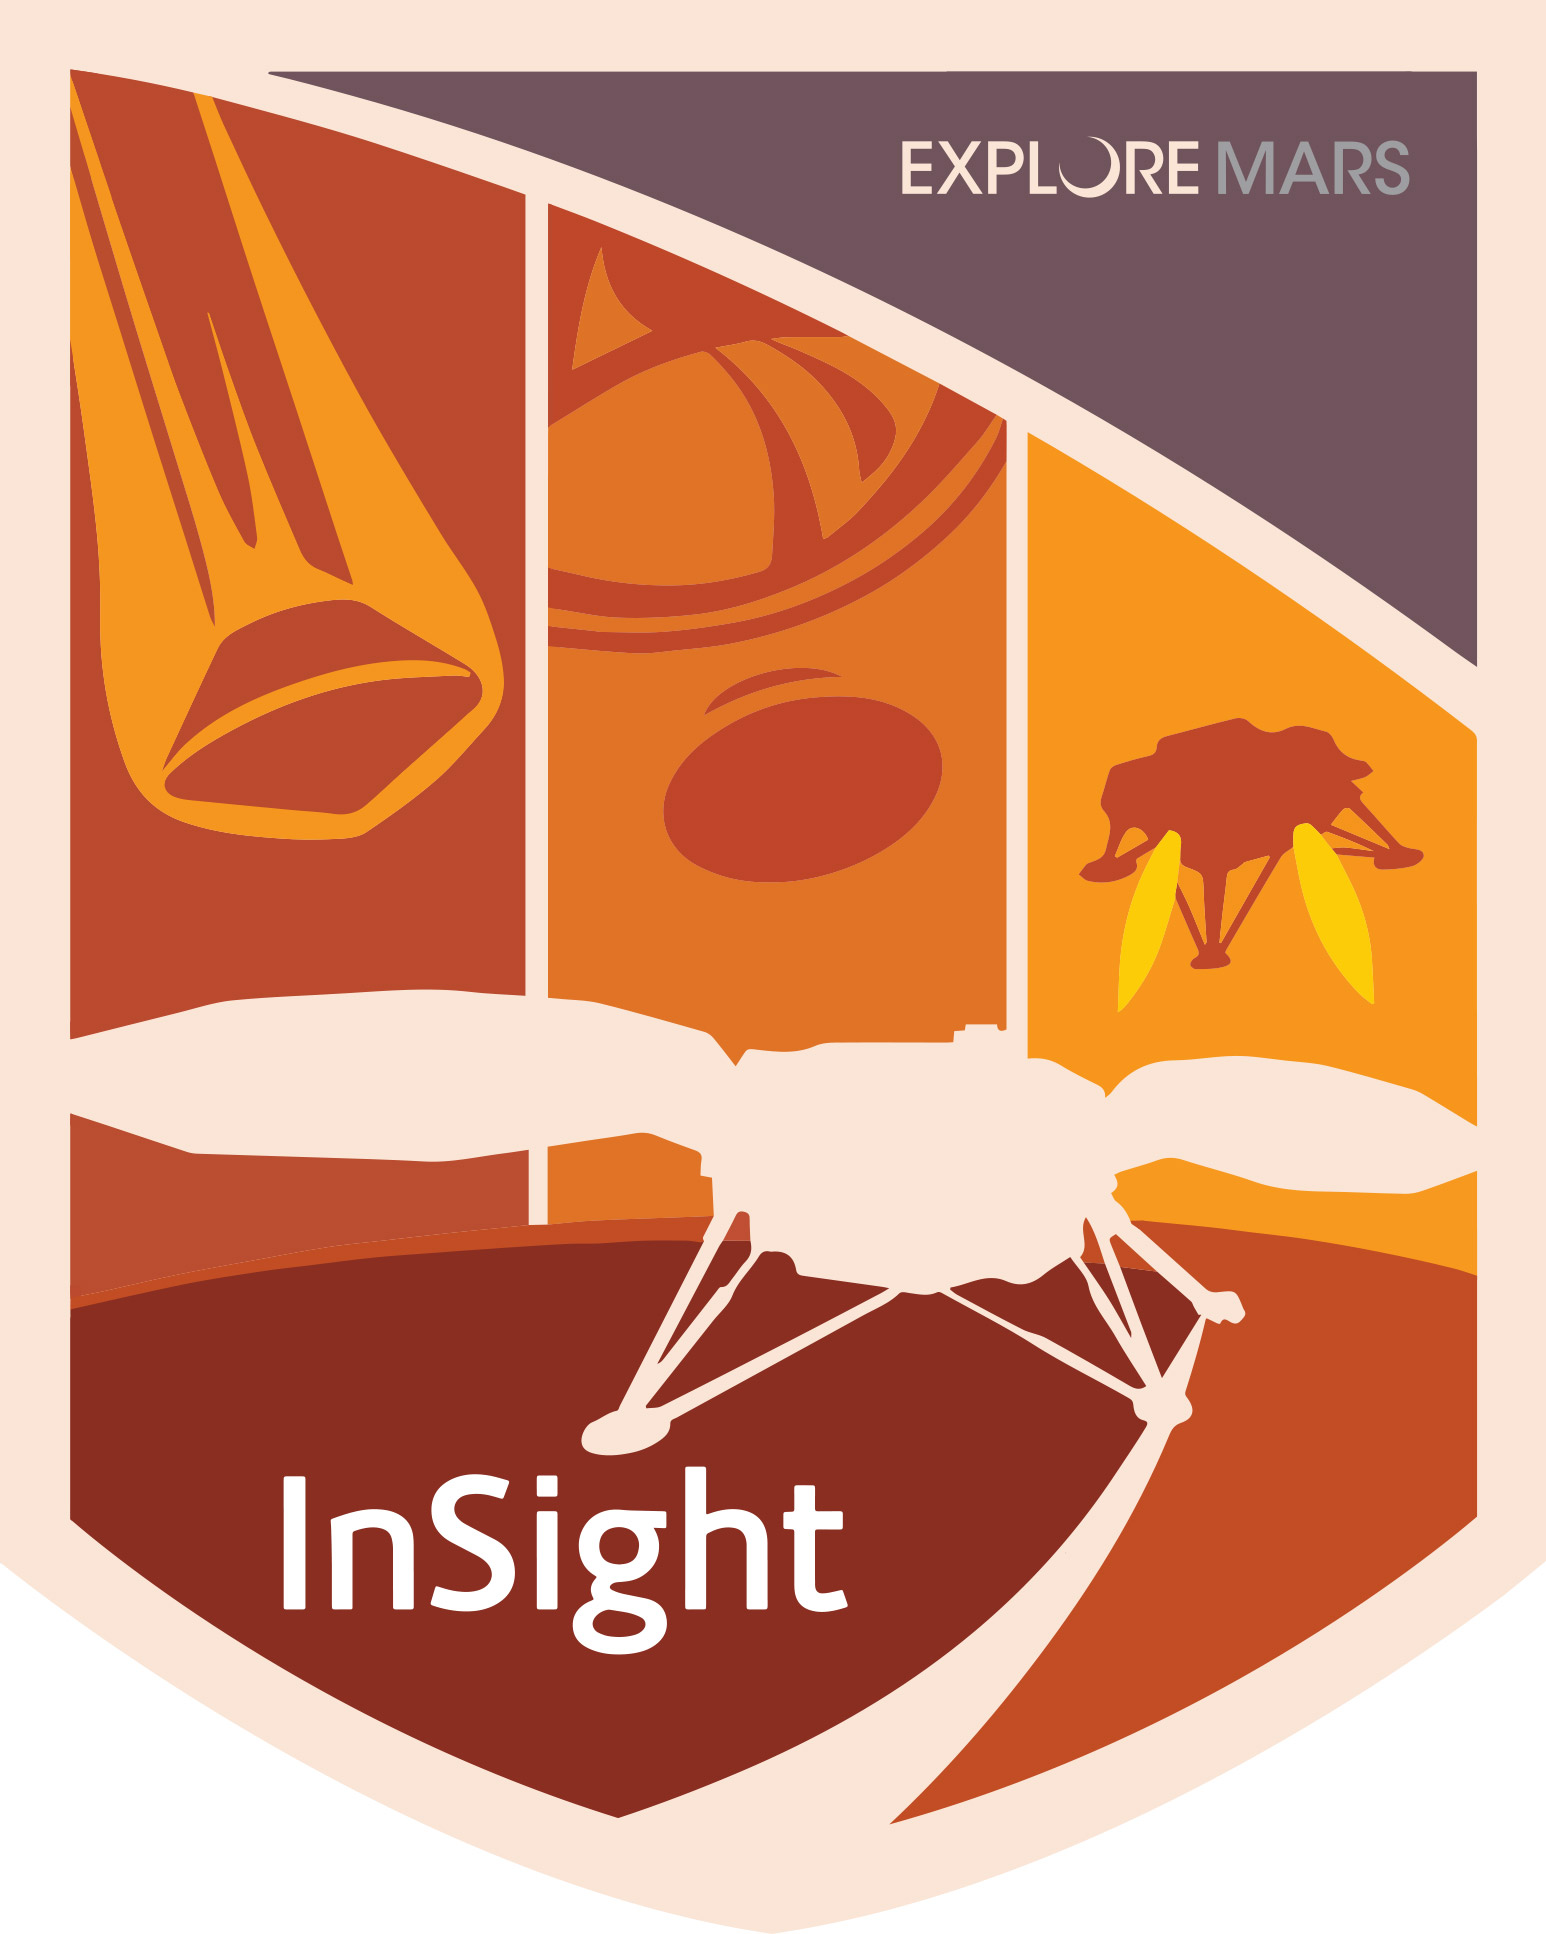 hight resolution of download a pdf of the insight landing sticker